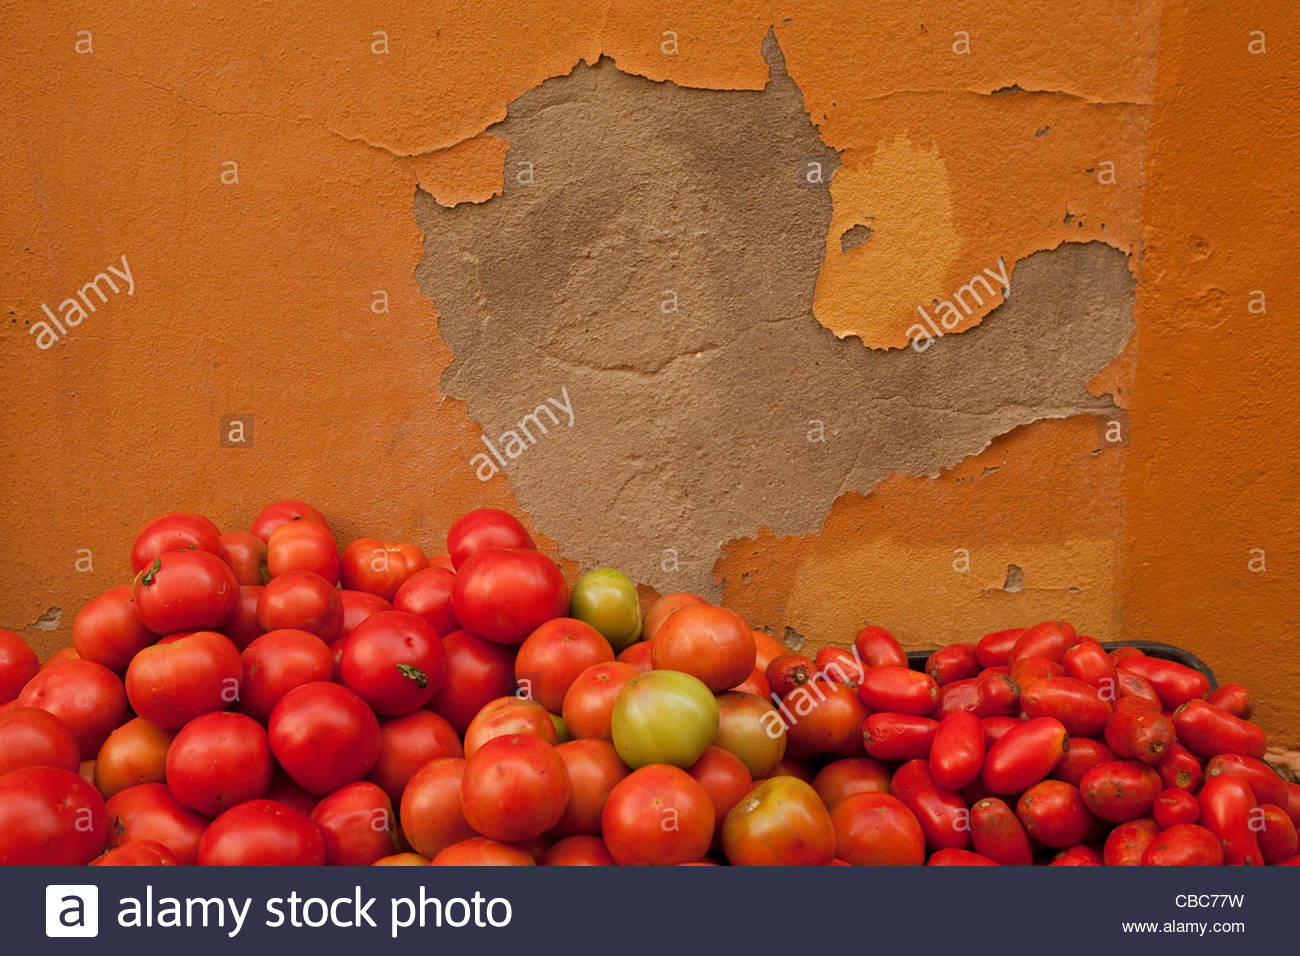 Tomatoes piled against concrete wall - Stock Image